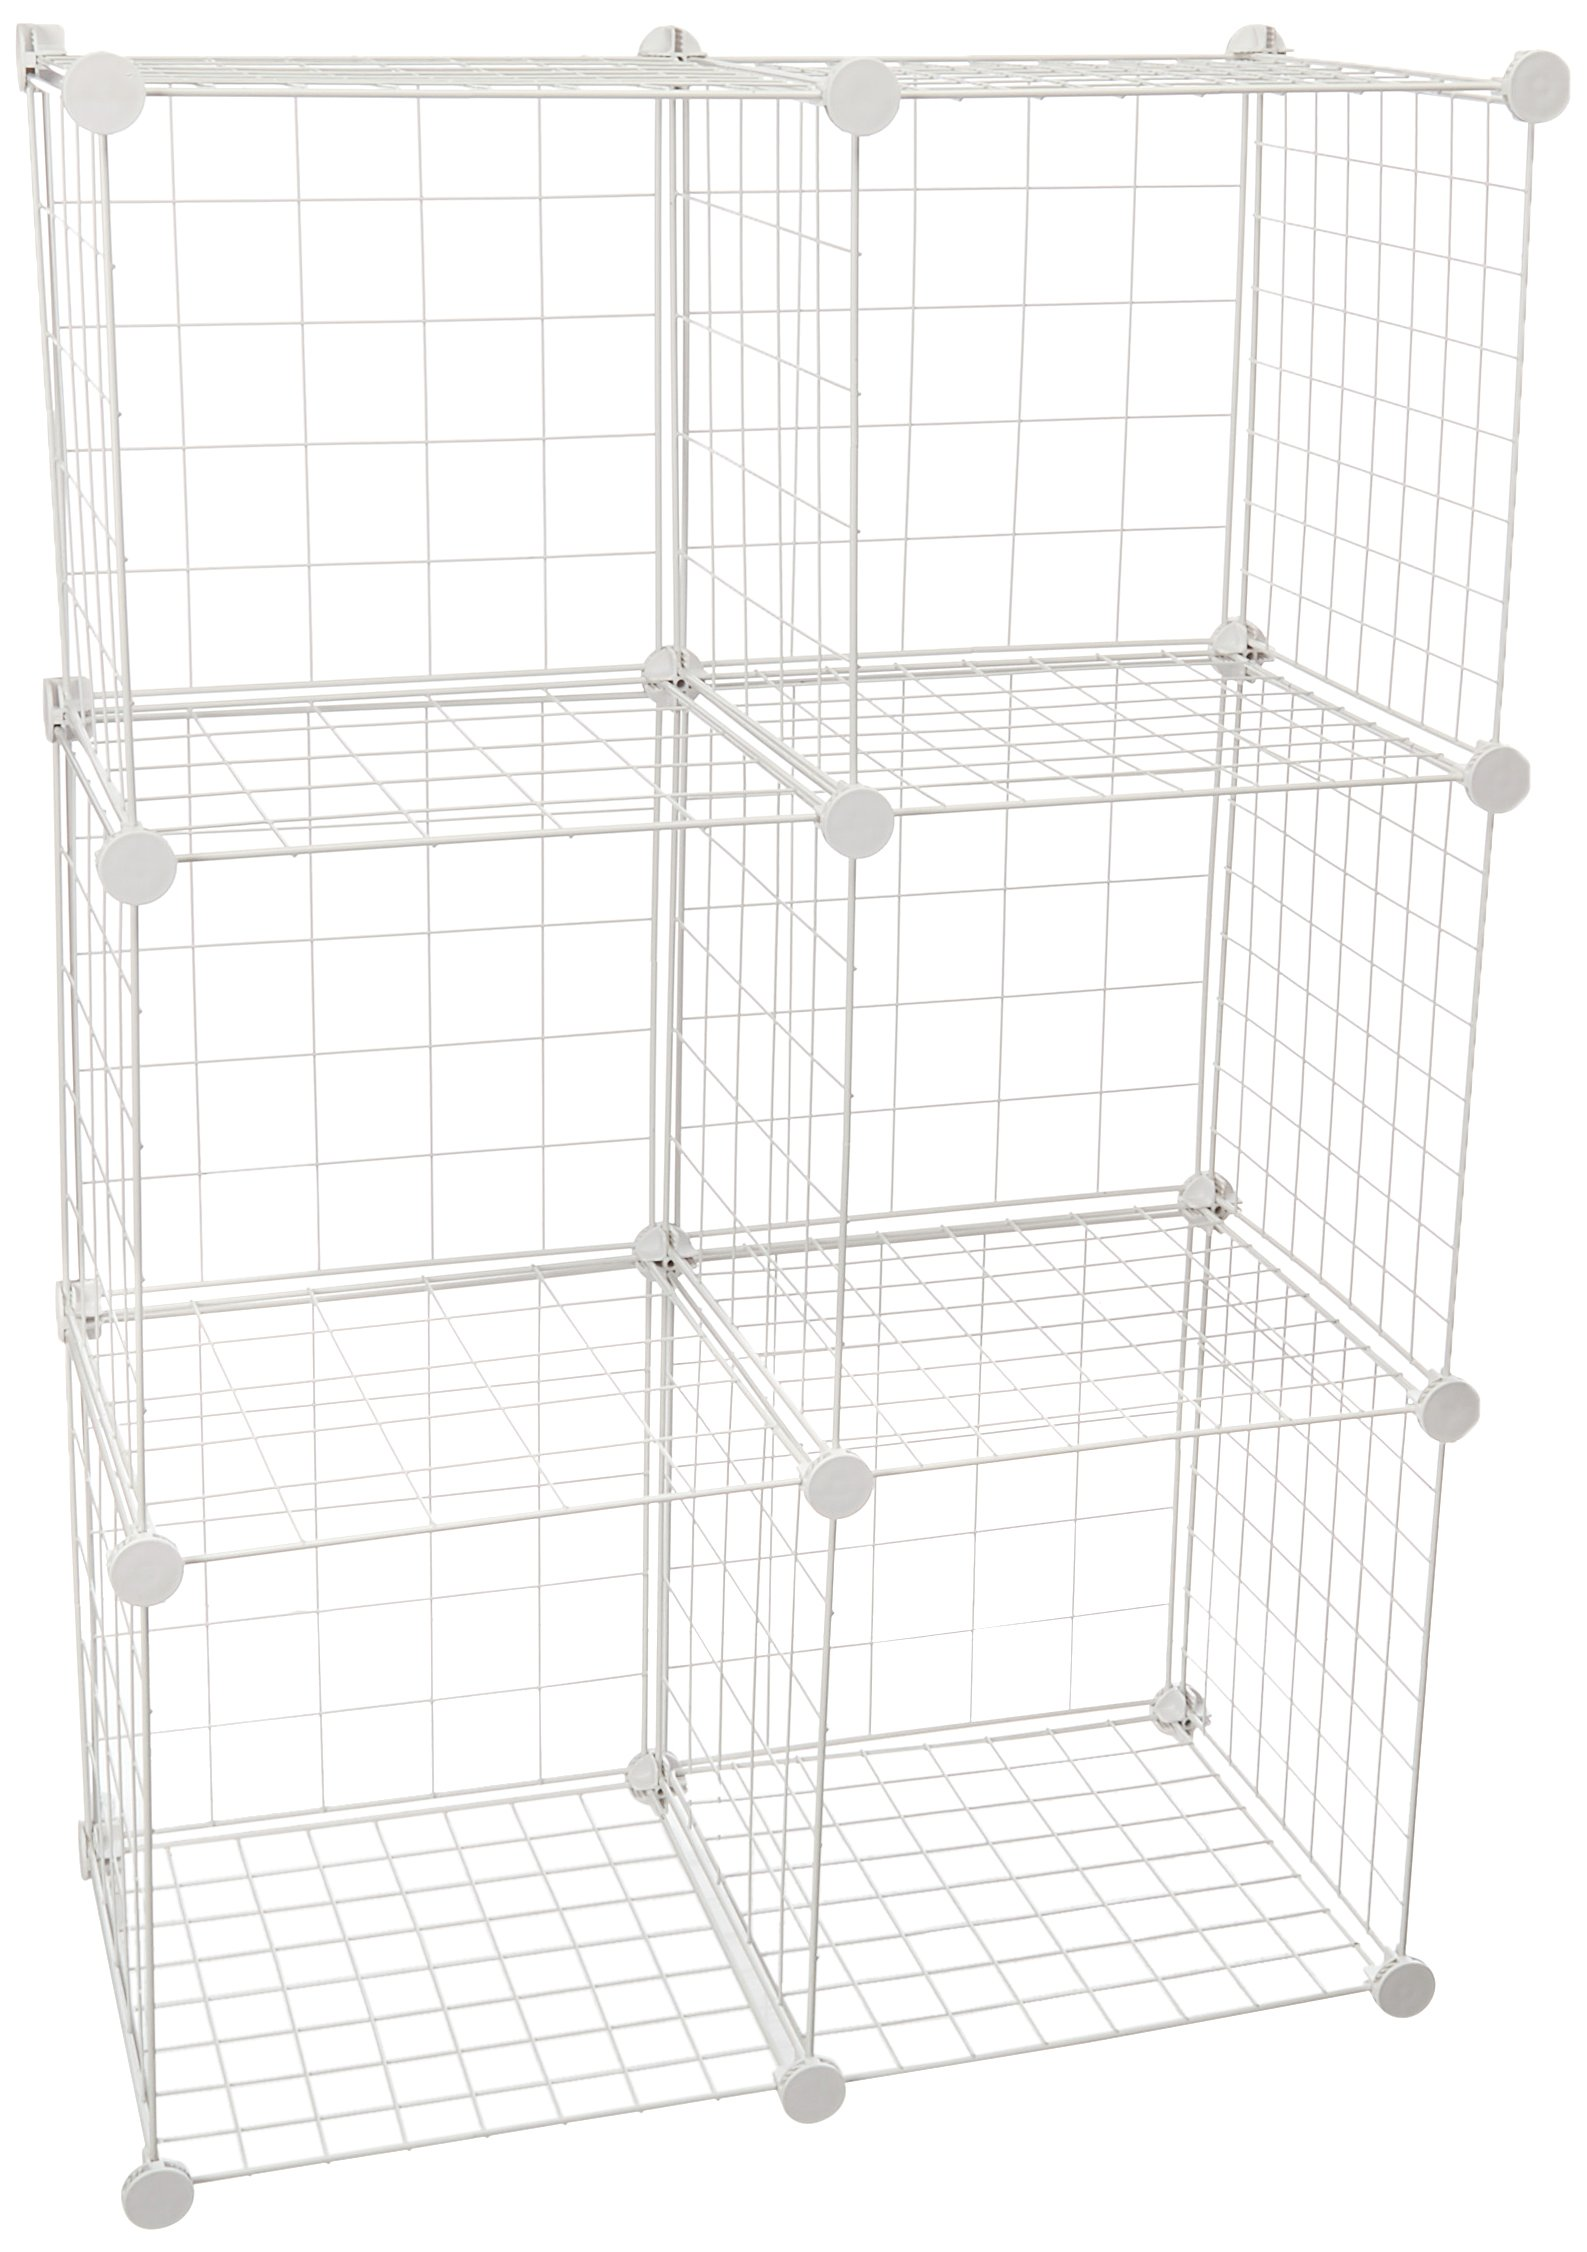 Honey-Can-Do SHF-03521 Modular Mesh Storage Cube, 6-Pack, White, 43Hx29W